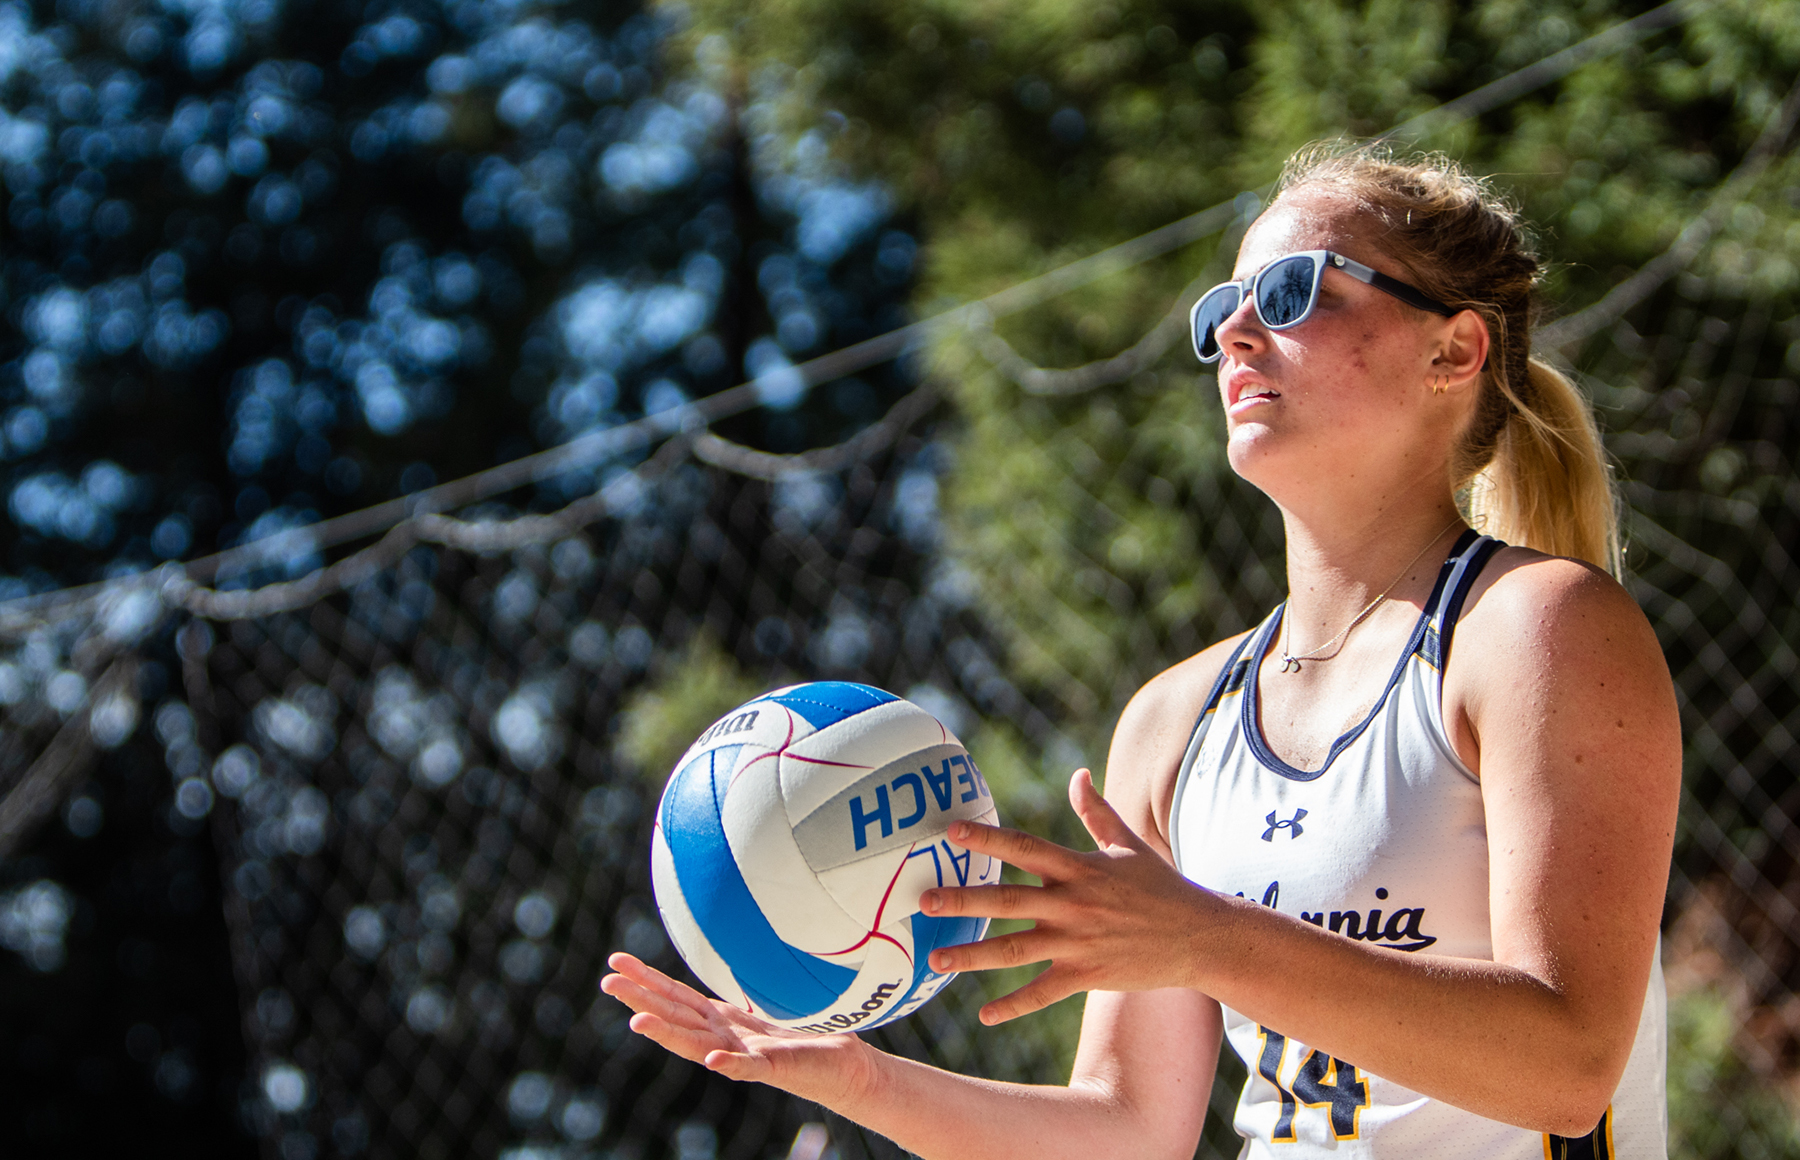 After challenging weekend, Cal beach volleyball is determined to bounce back